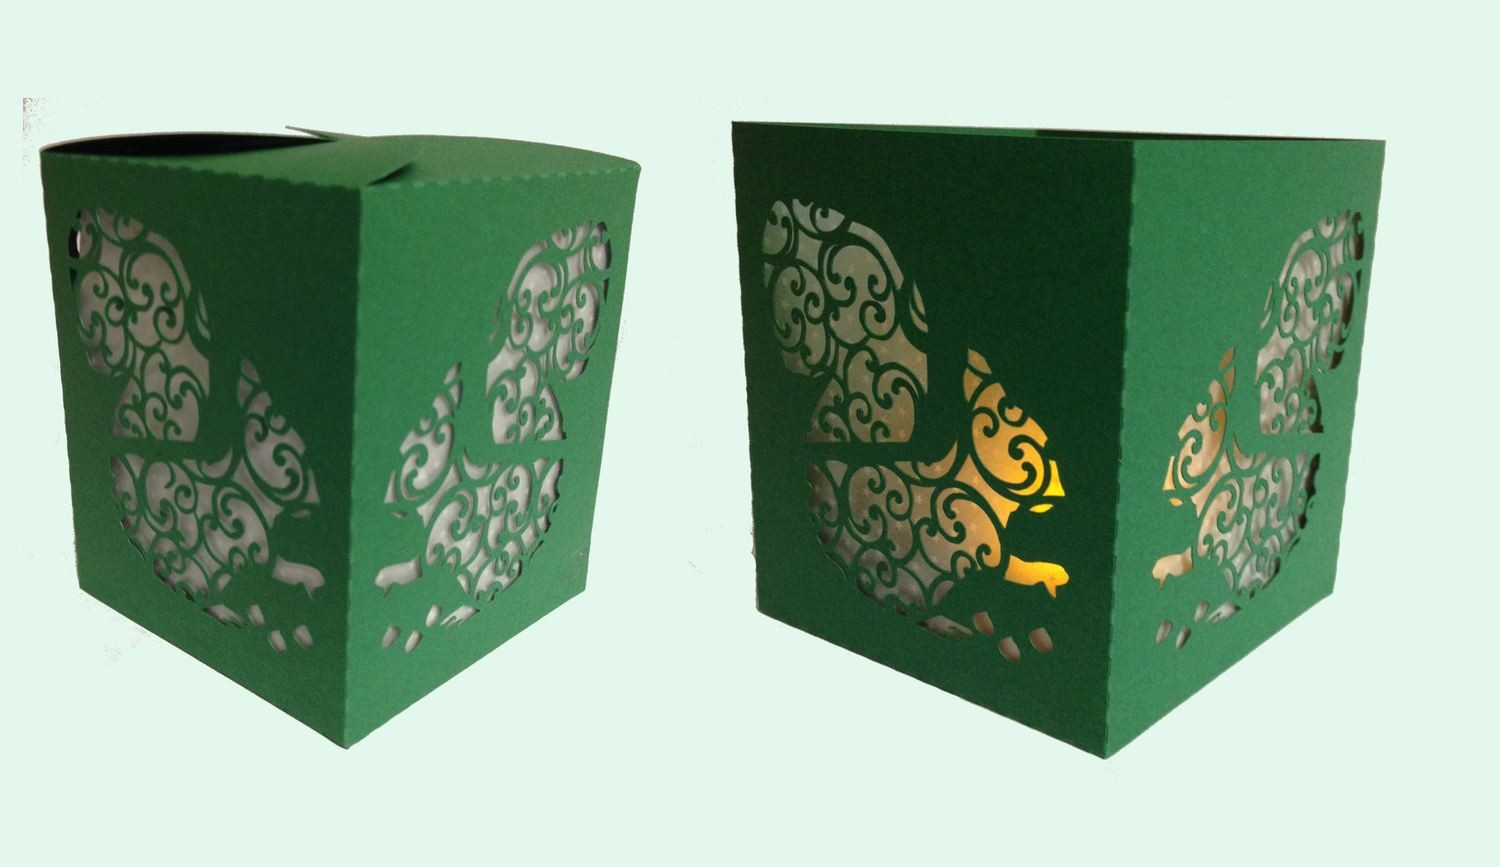 Luminaire or Gift Box Squirrel 2 files